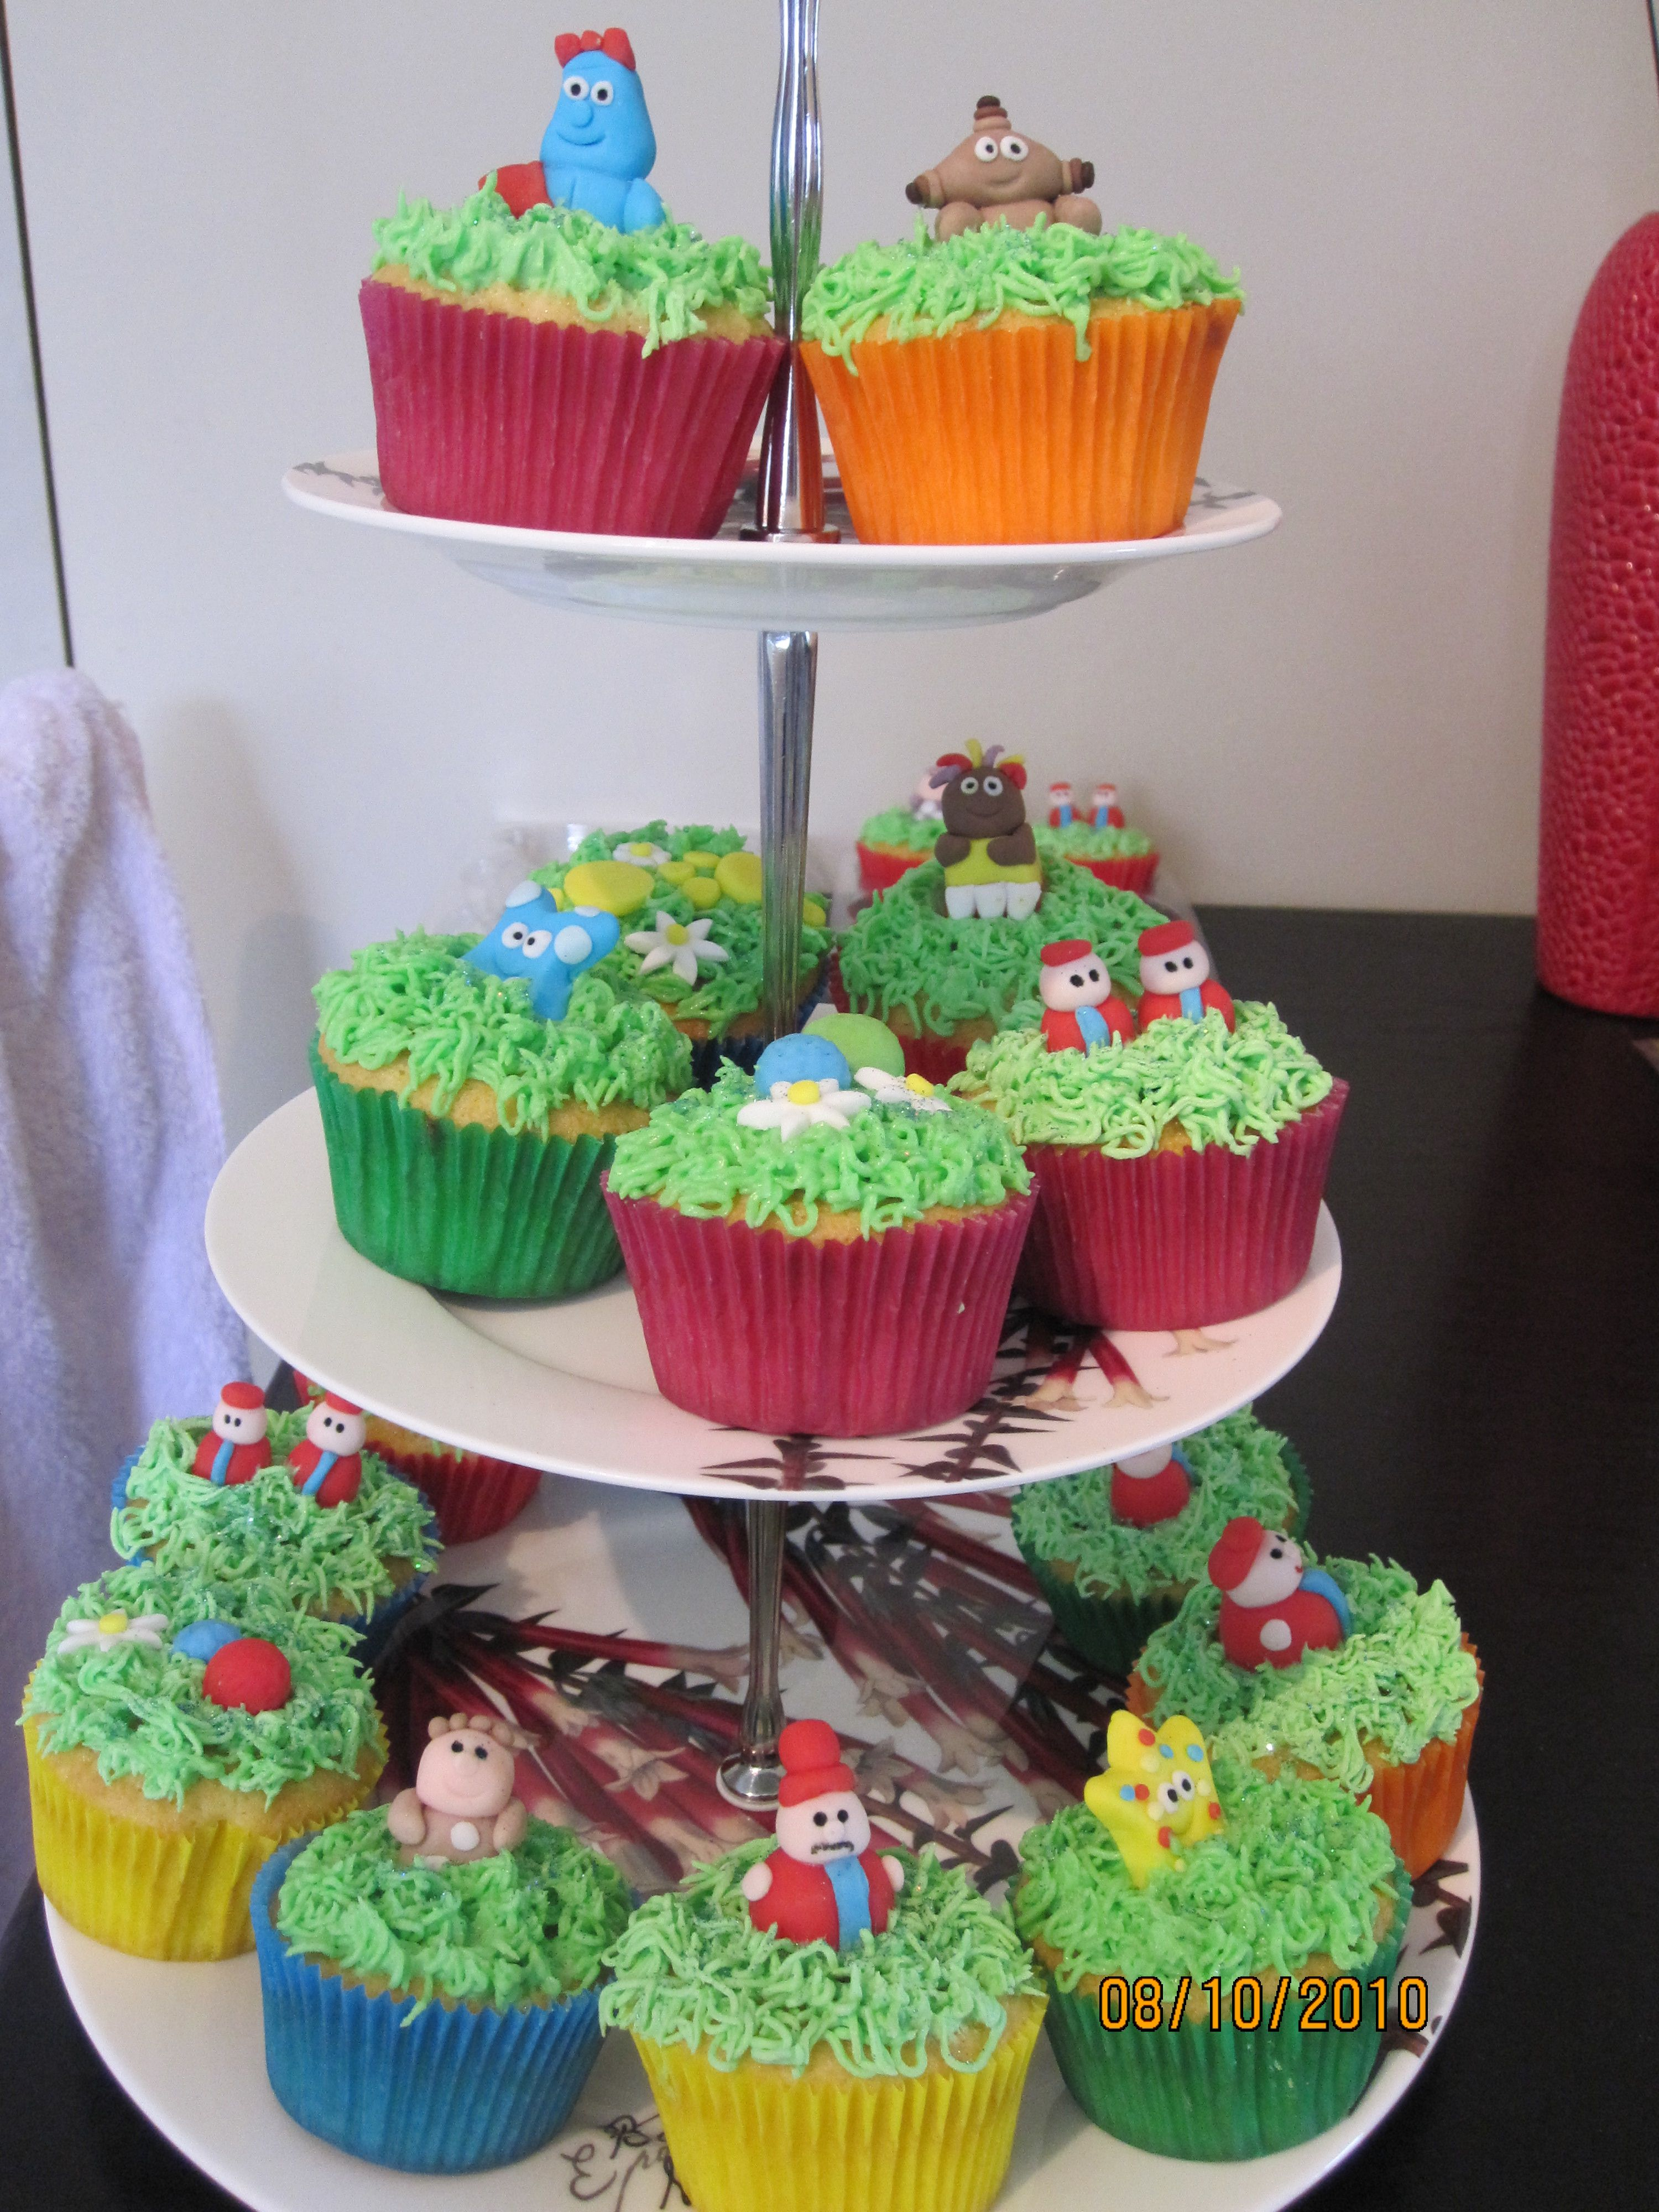 In the Night Garden Cupcakes | My Baking Creations | Pinterest ...